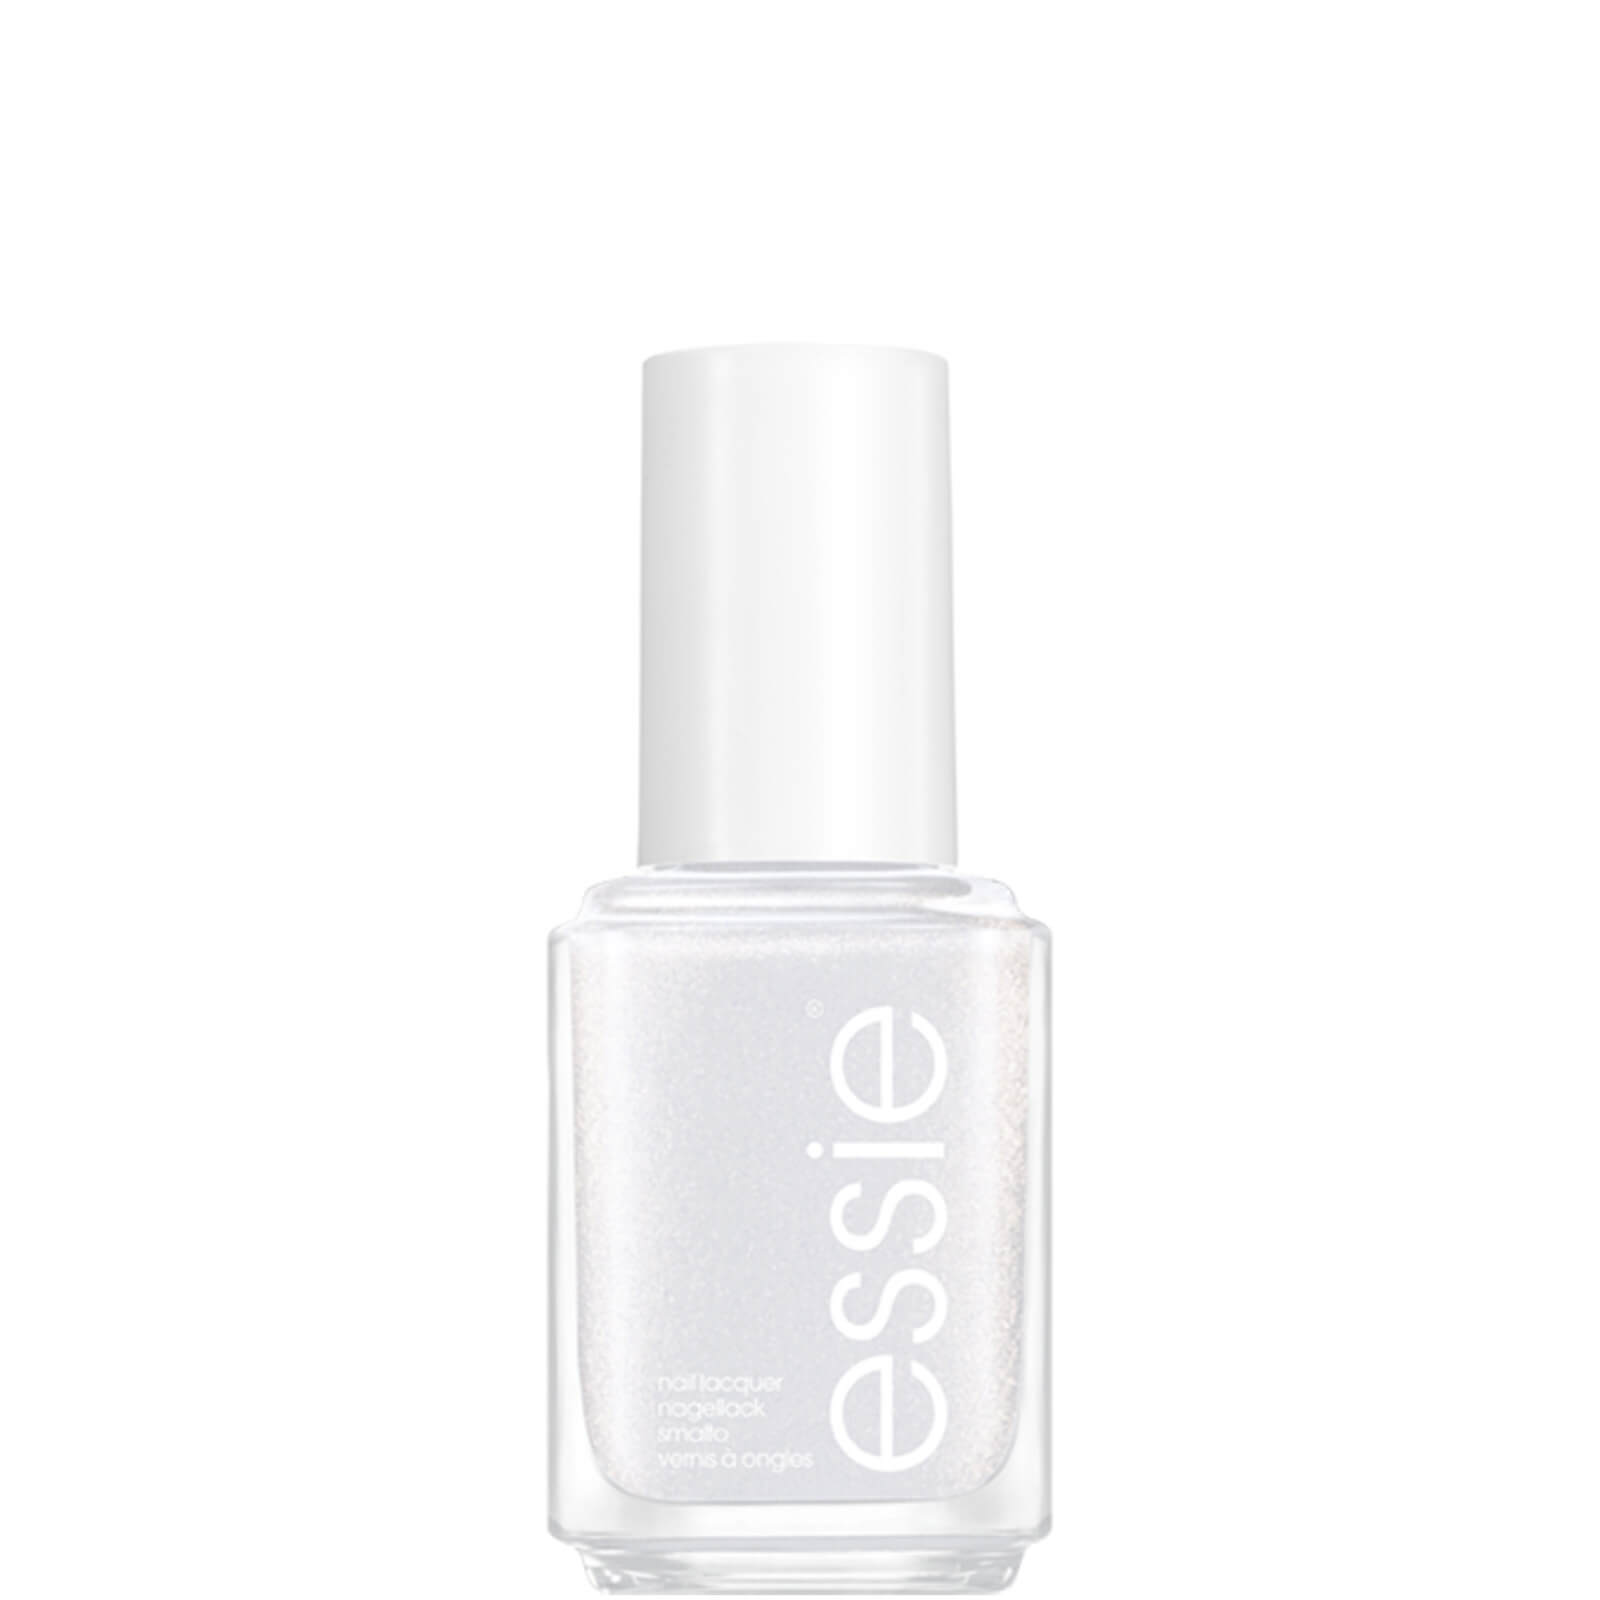 Купить Essie Nail Polish Winter Collection 13.5ml (Various Shades) - 742 Twinkle in Time